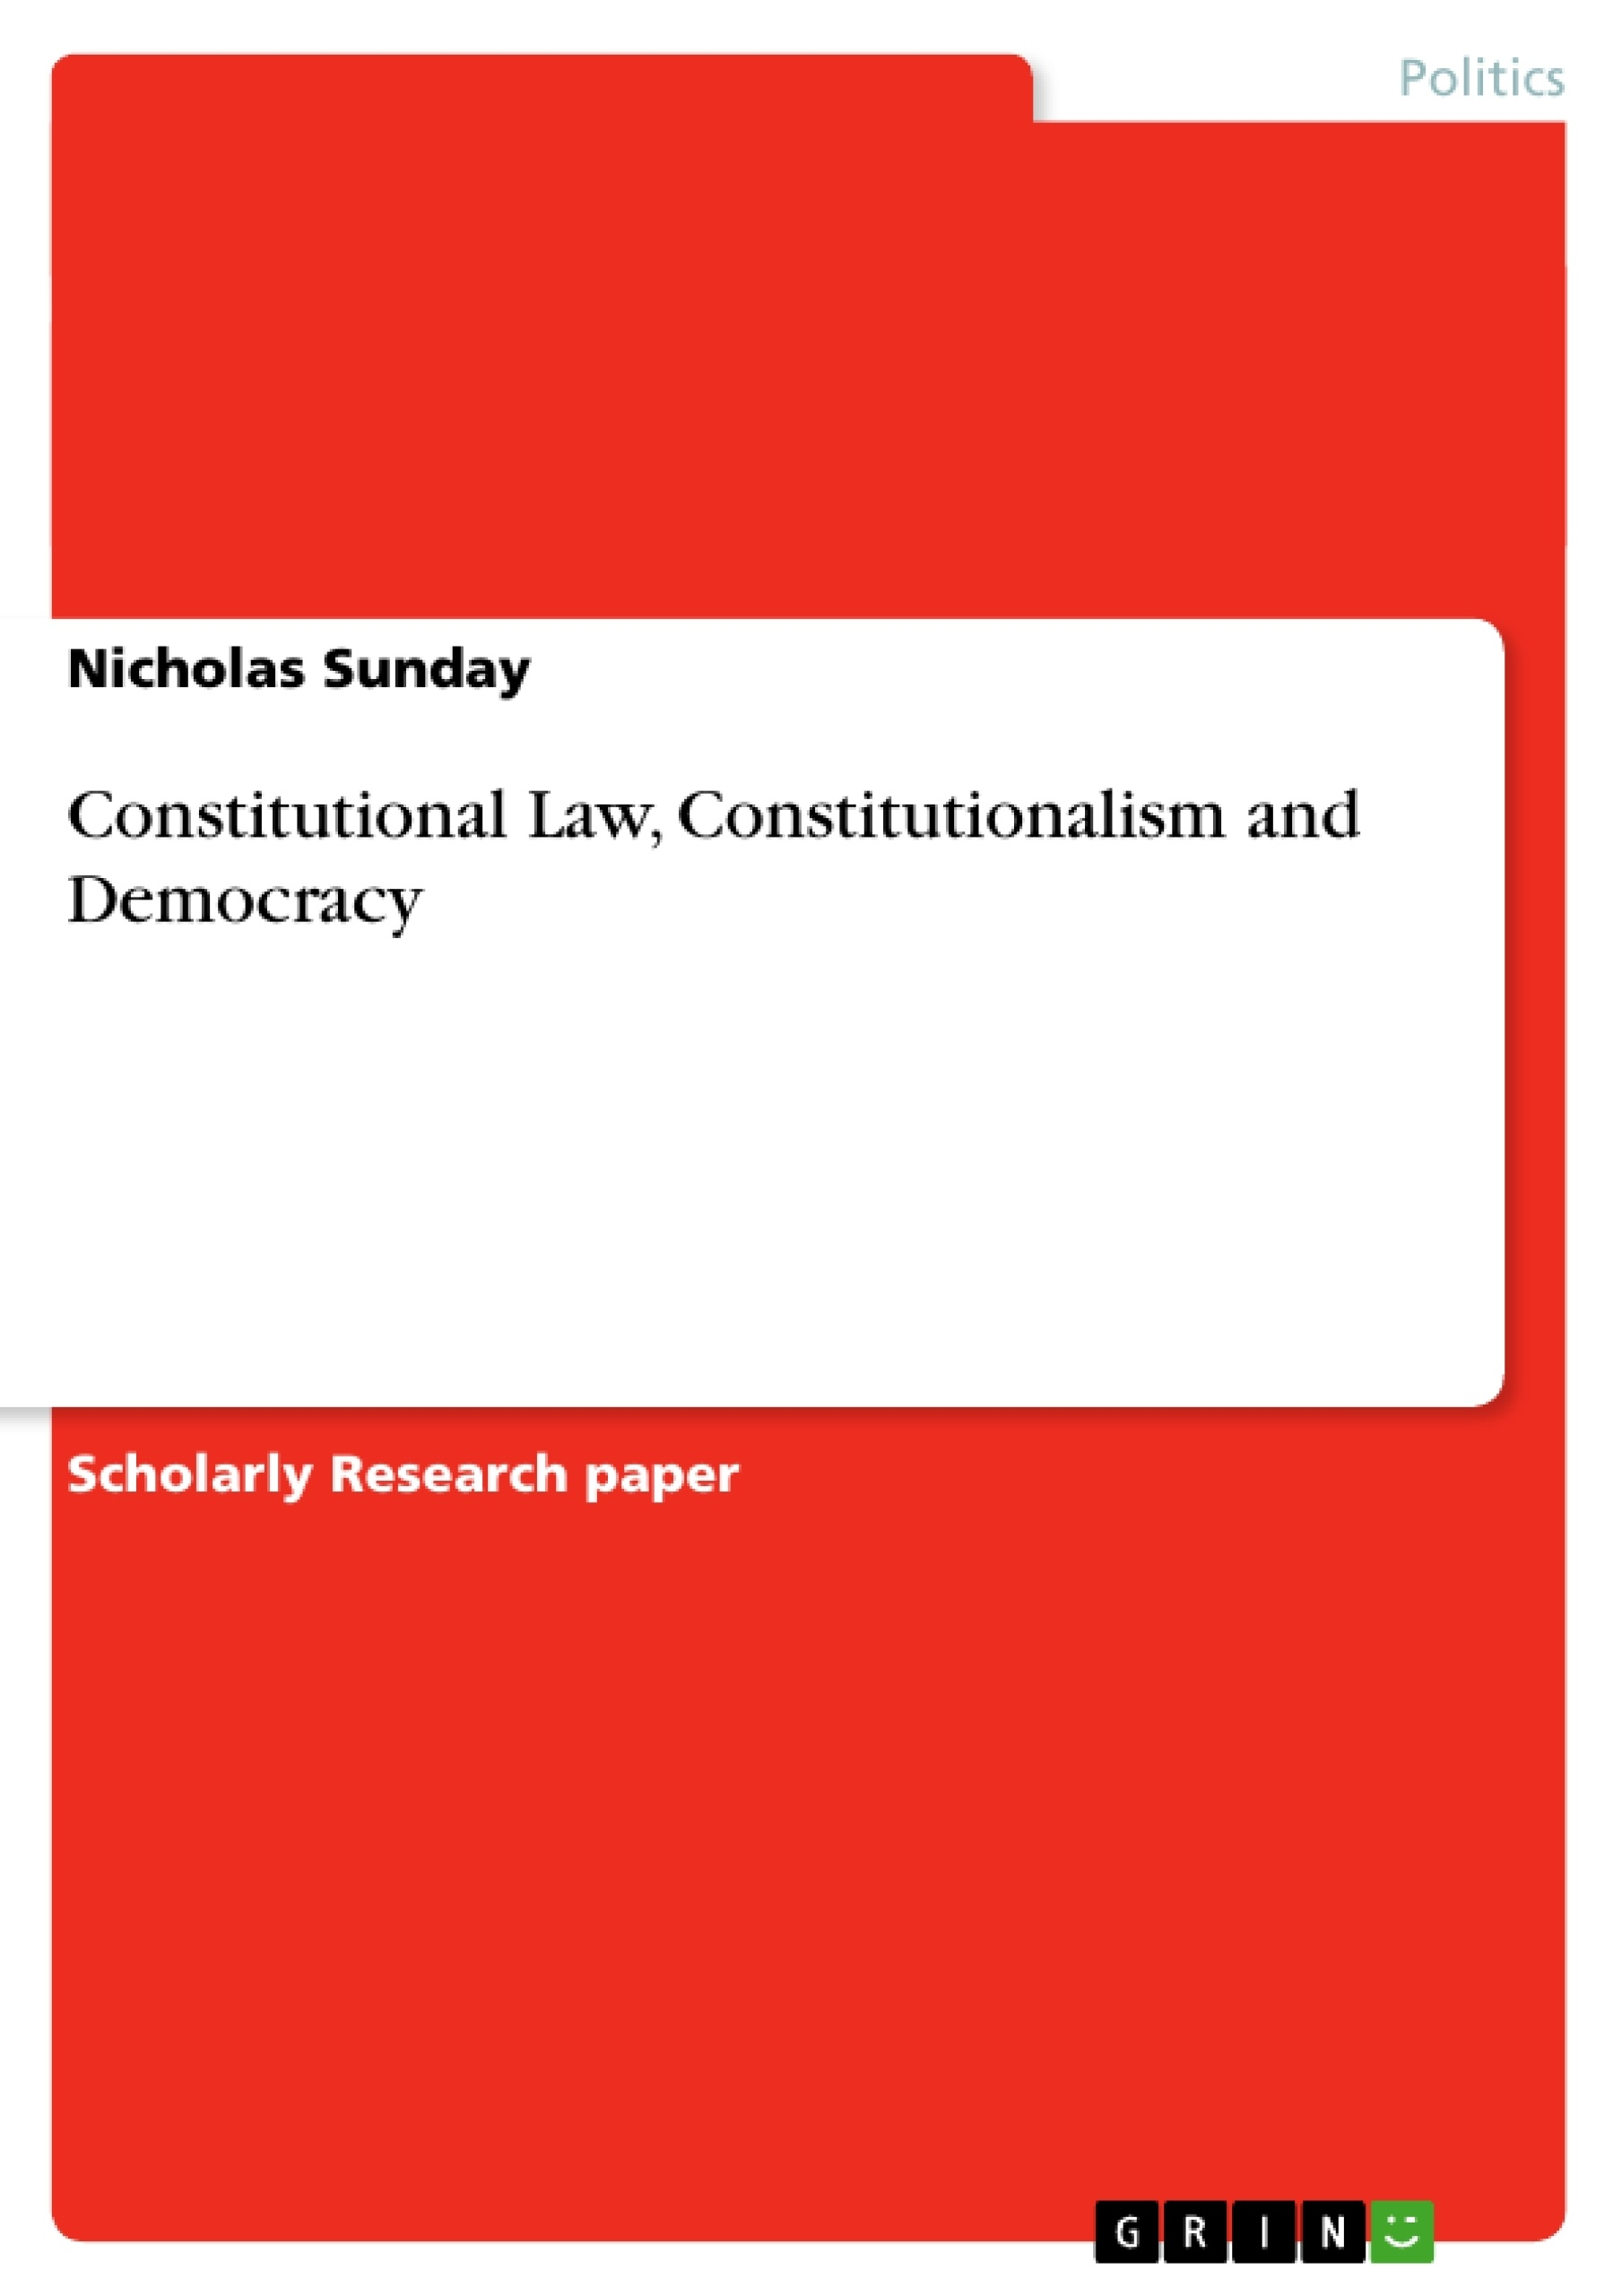 Constitutional Law, Constitutionalism And Democracy  Publish Your Master's  Thesis, Bachelor's Thesis, Essay Or Term Paper